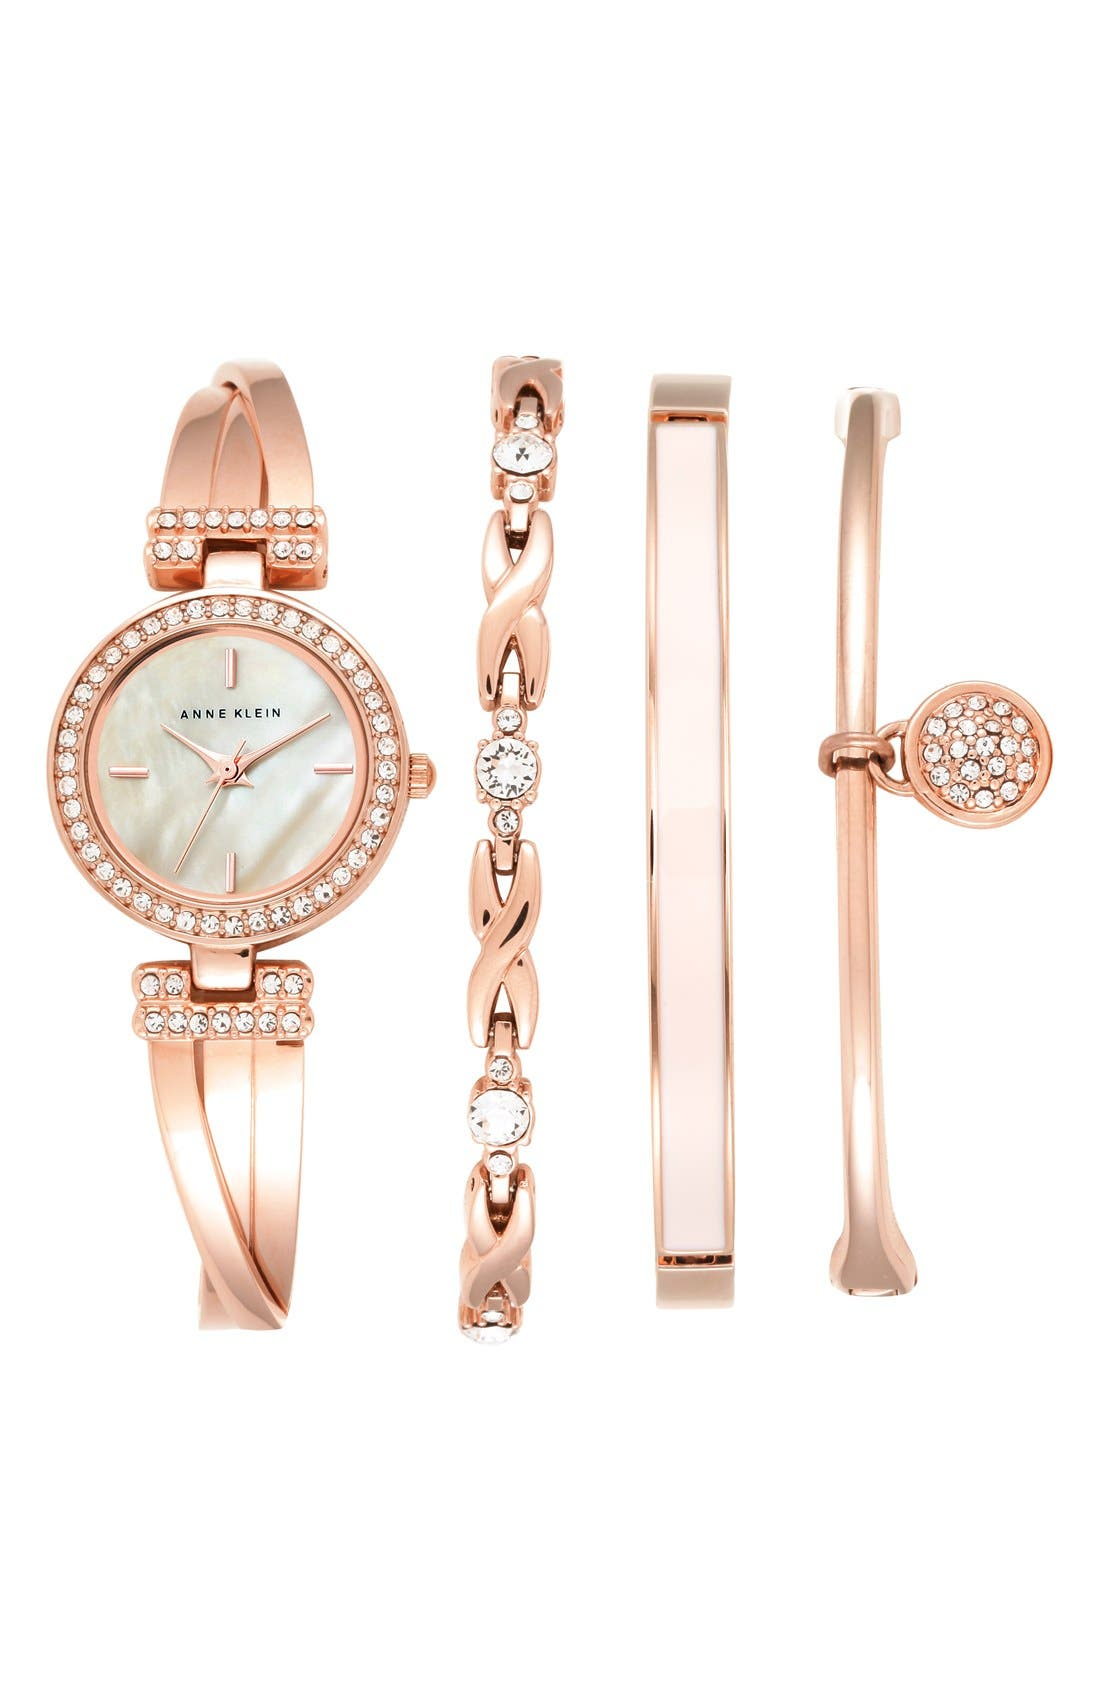 ANNE KLEIN Boxed Bracelet & Bangle Watch Set, 24mm